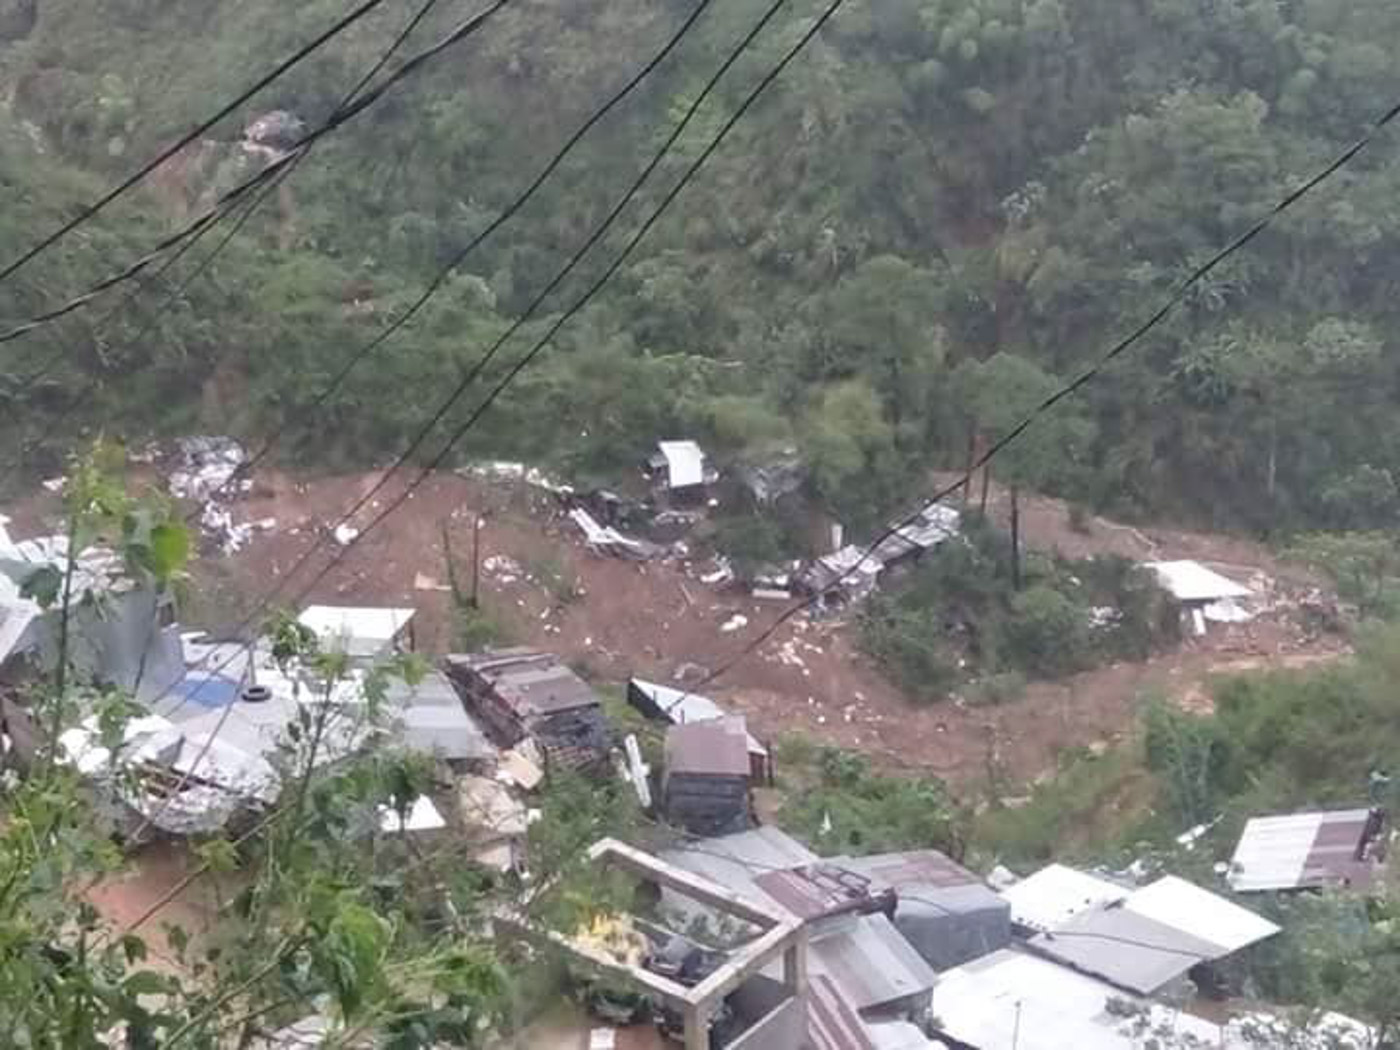 DEADLY LANDSLIDE. A massive landslide in Barangay Loacan in Itogon, Benguet killed at least 26 people. Photo courtesy of Lily Ann Rosal Ullani